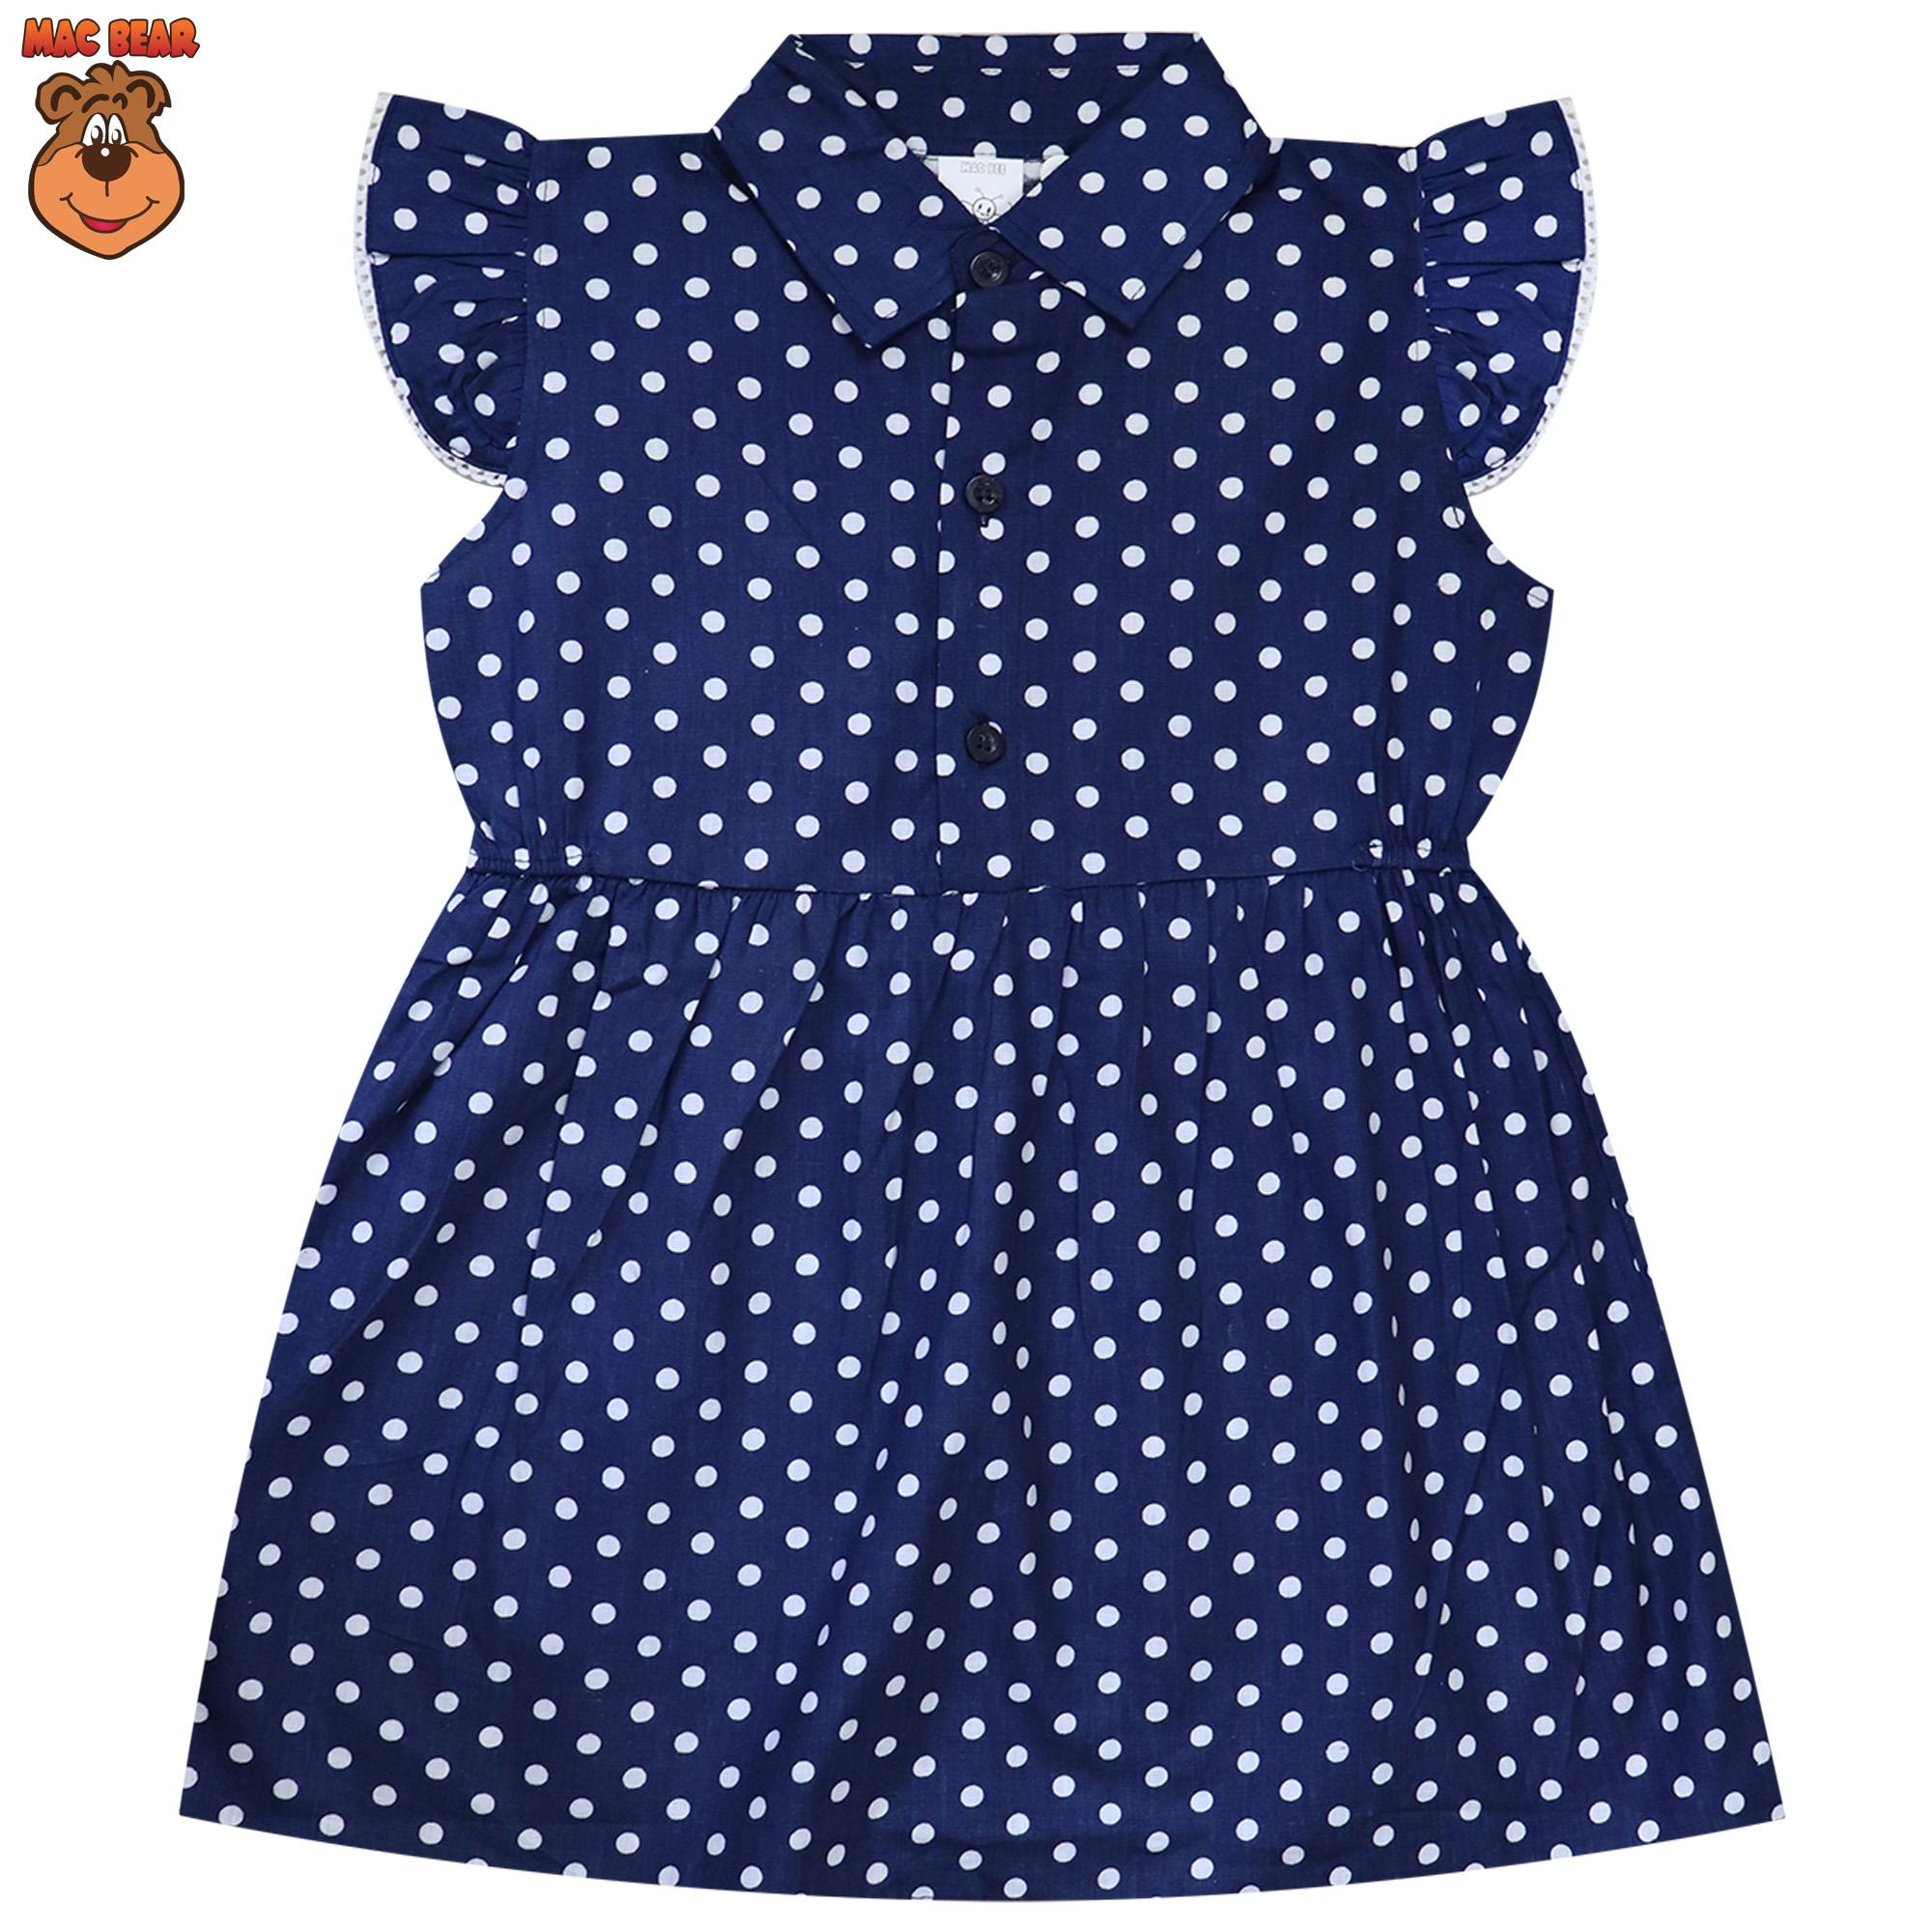 MacBee Kids Baju Anak Dress Sweet Polkadot